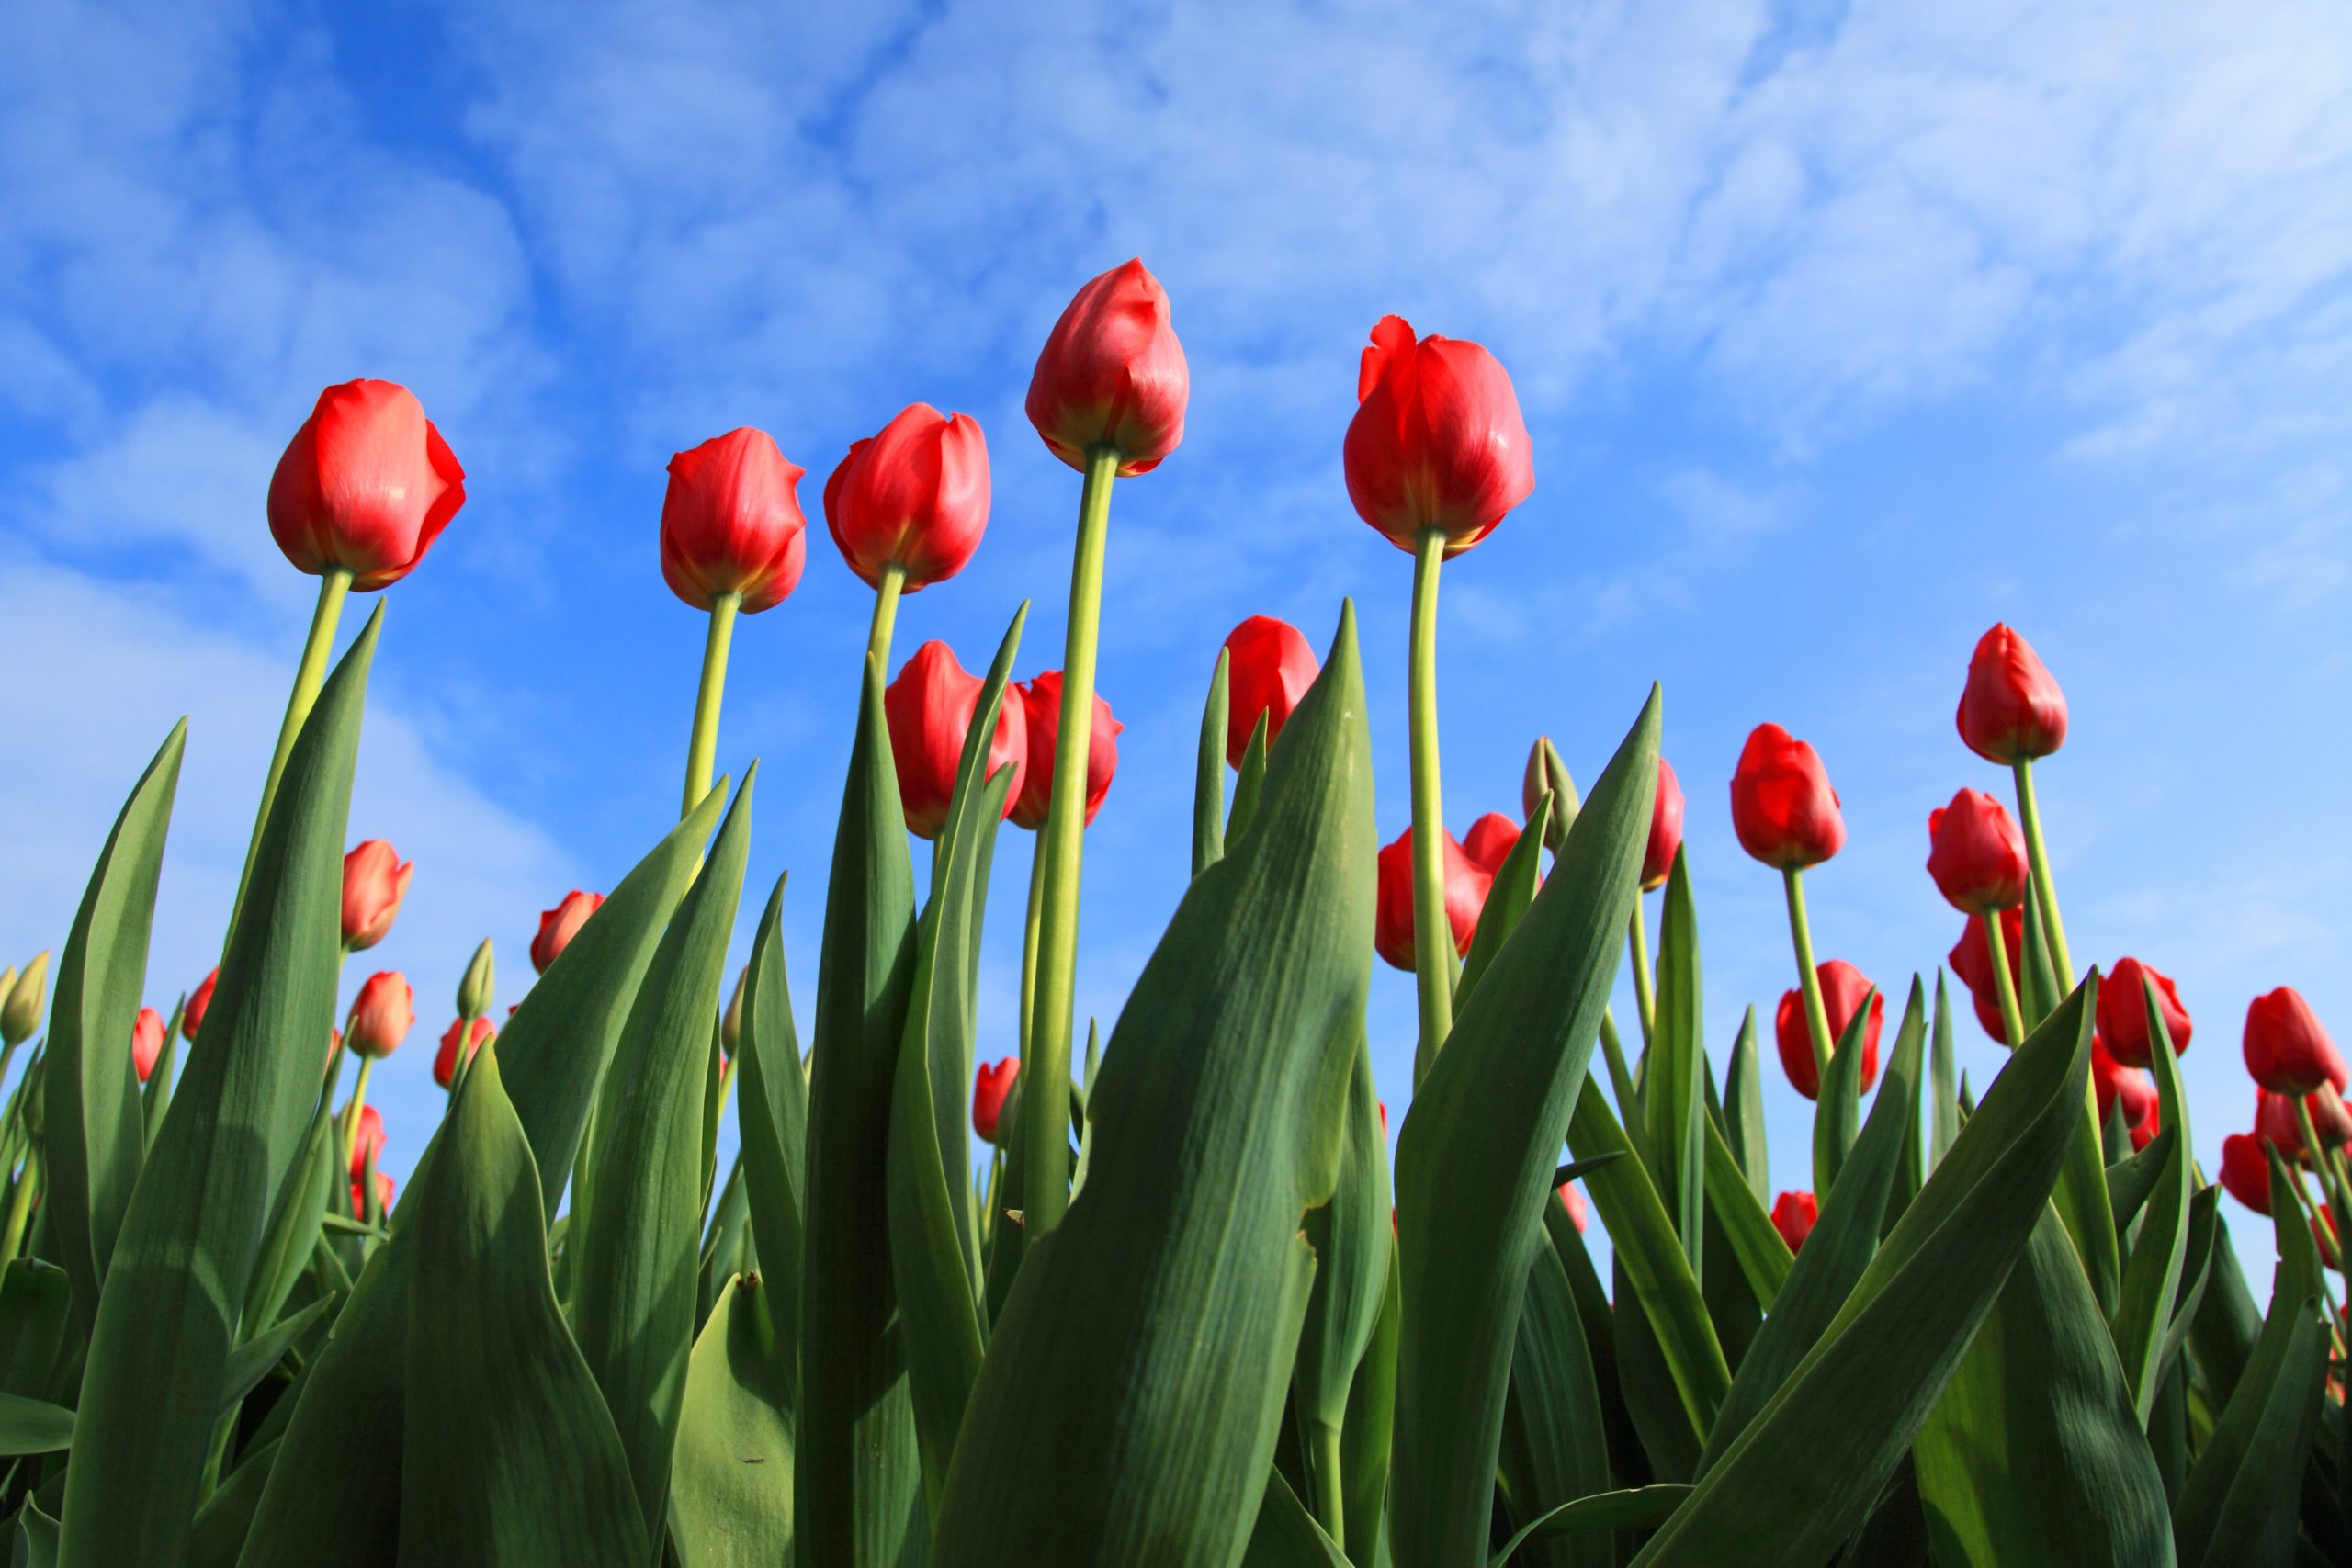 tulips with the blue sky in the background